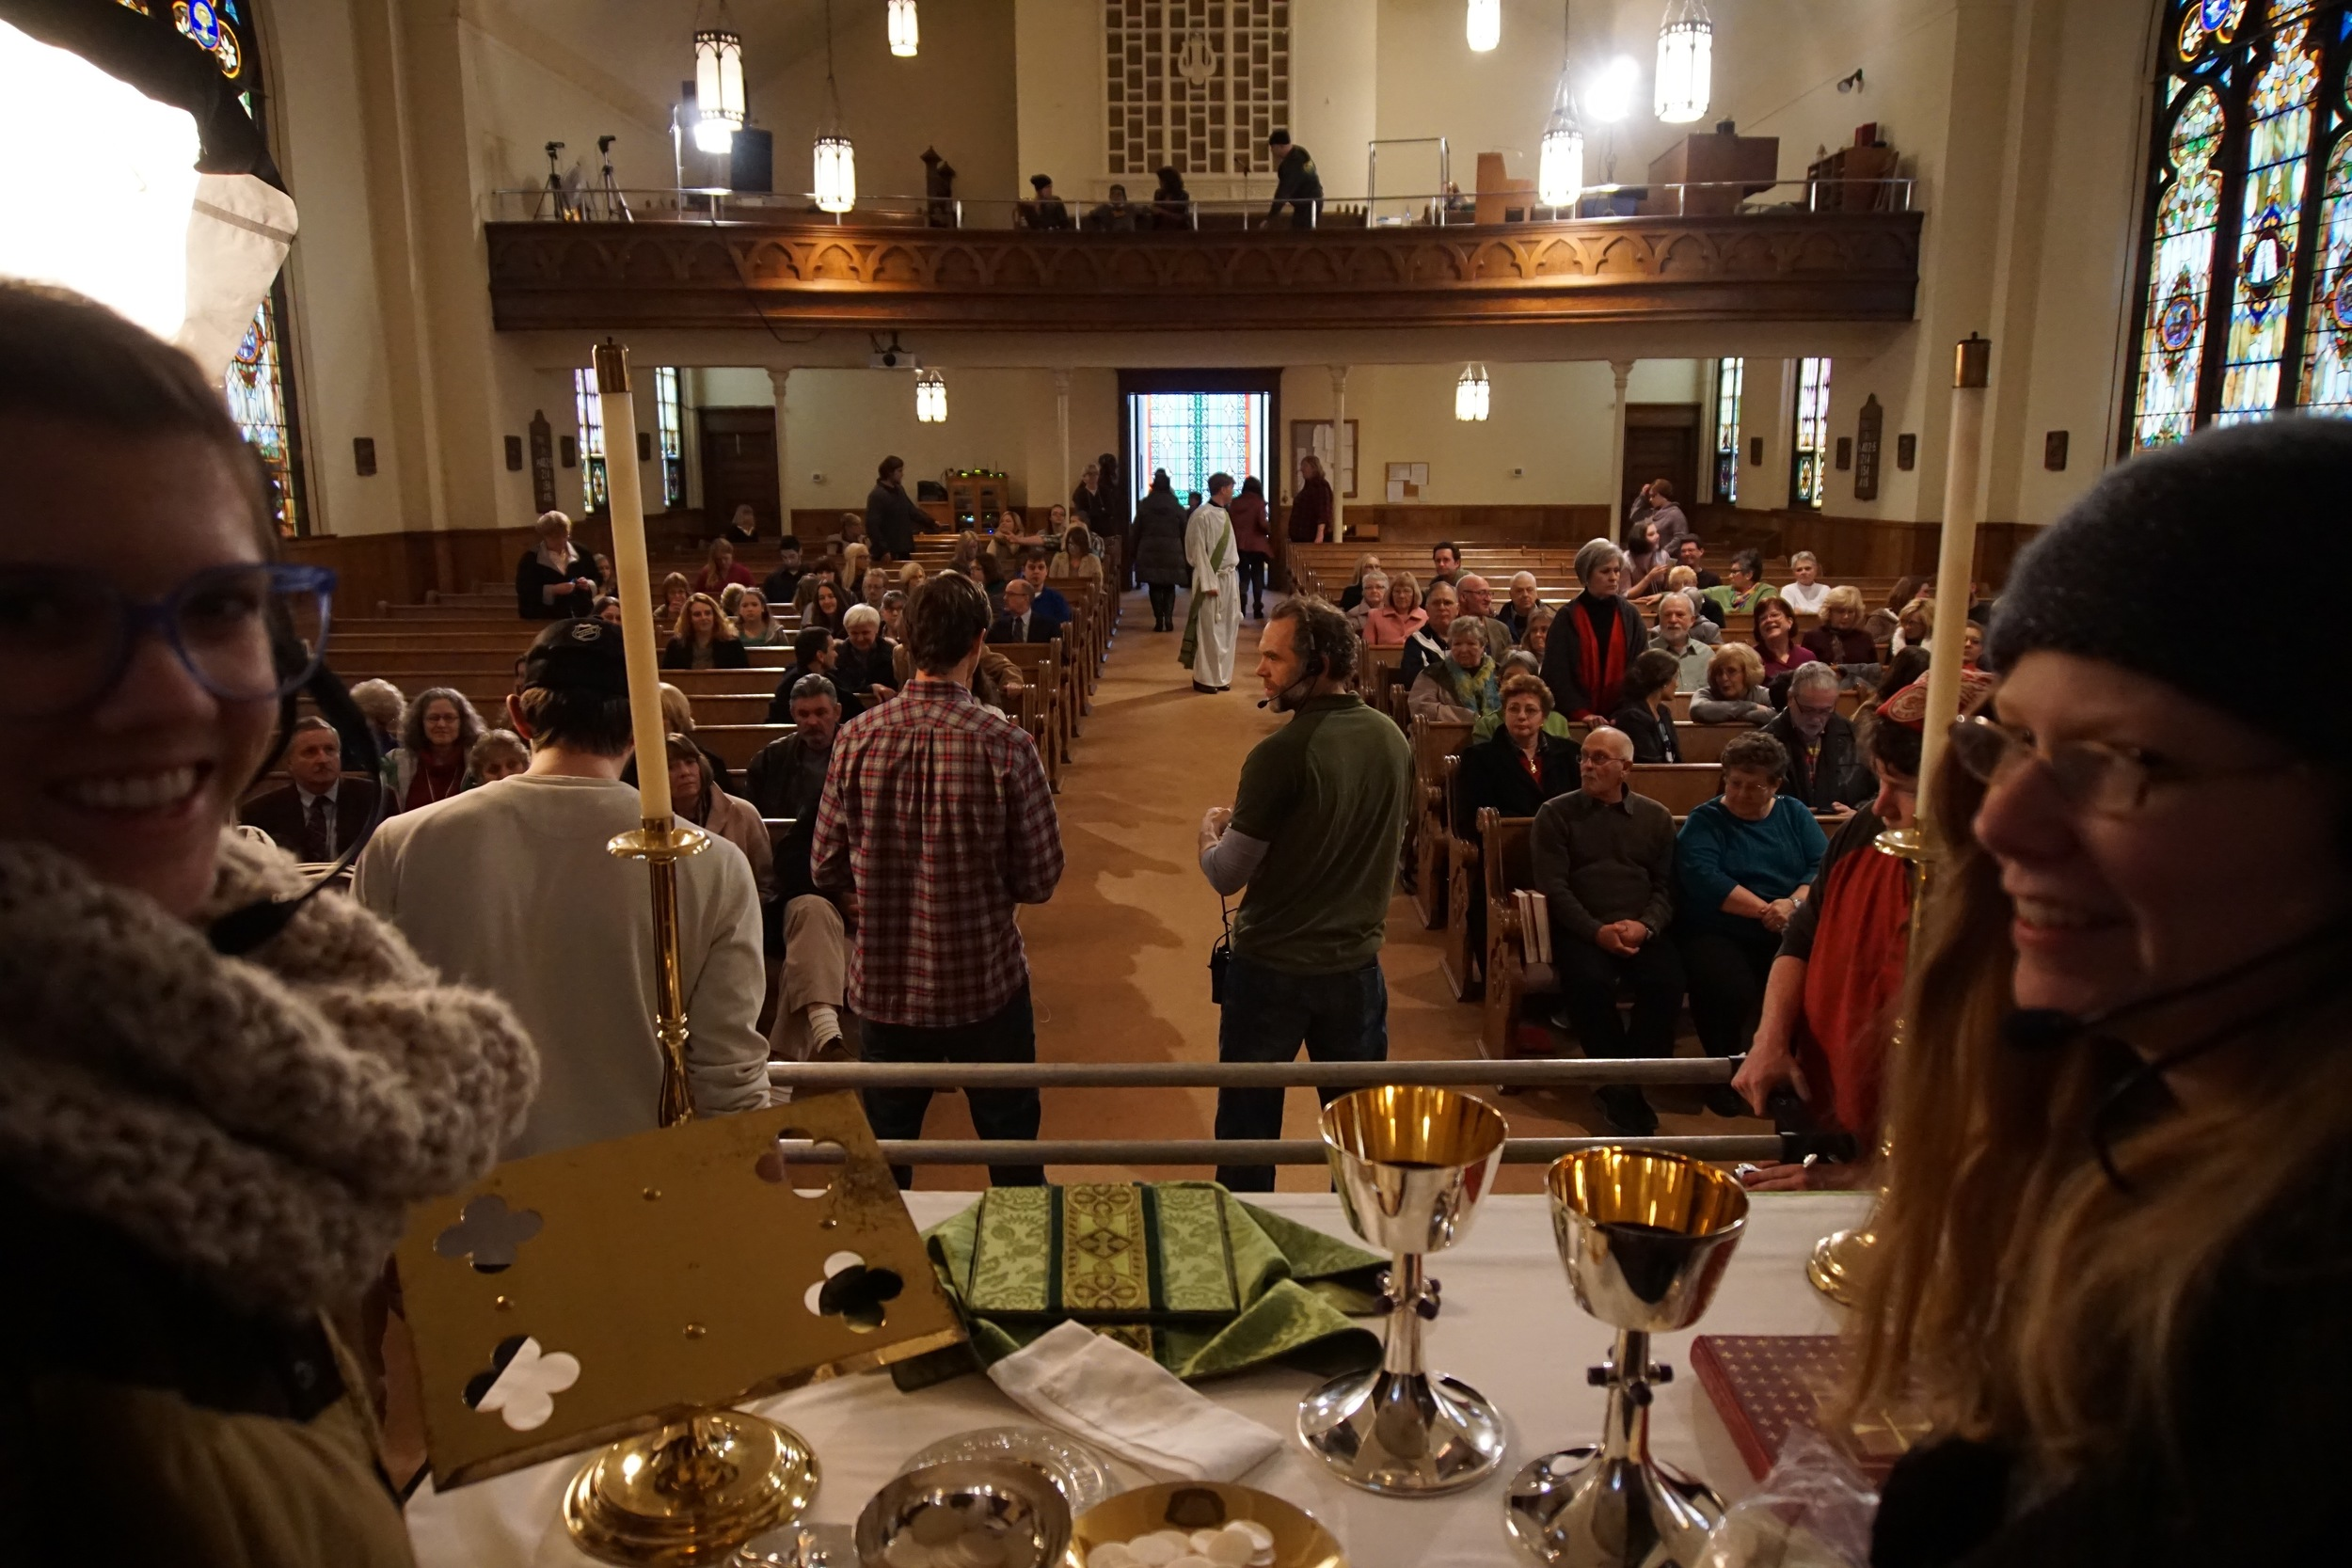 From the altar, see church pews filled with Marinette residents filming a Mass scene in Aquarians.